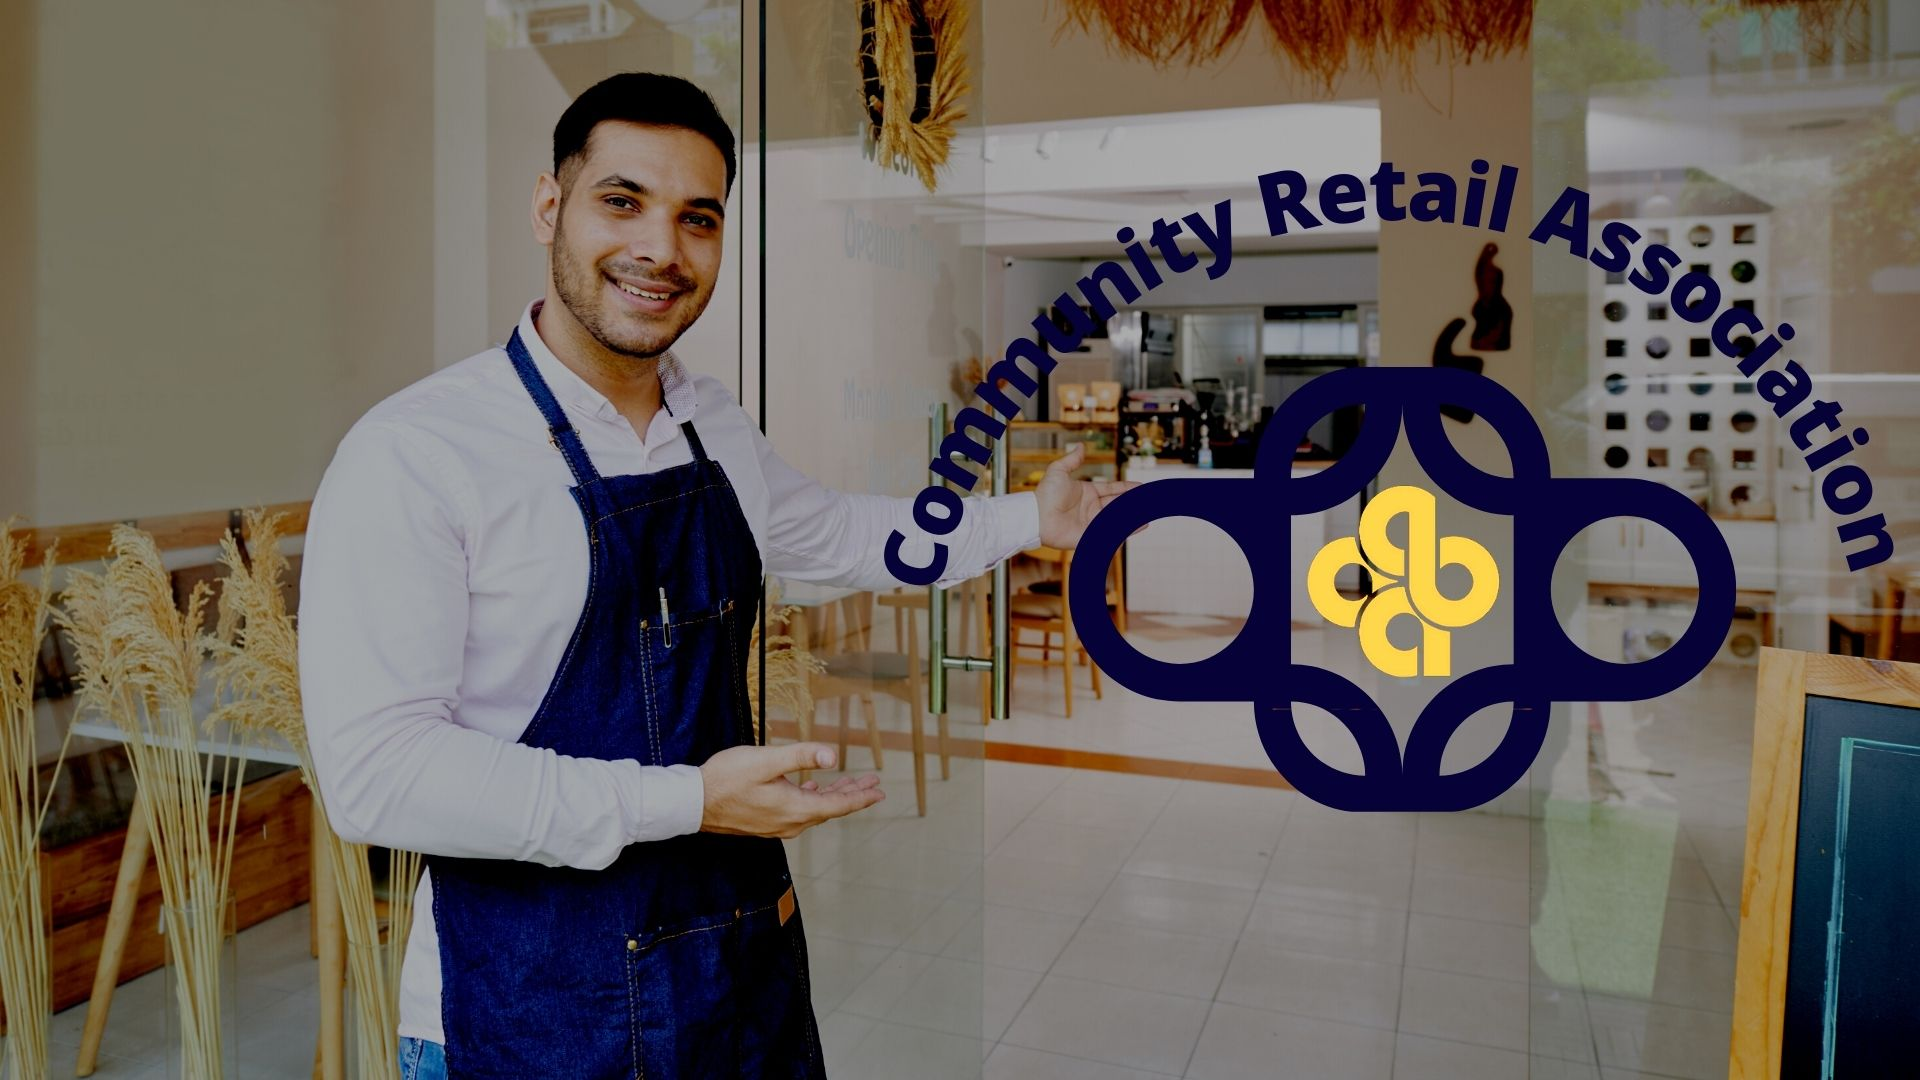 Introducing The Community Retail Association